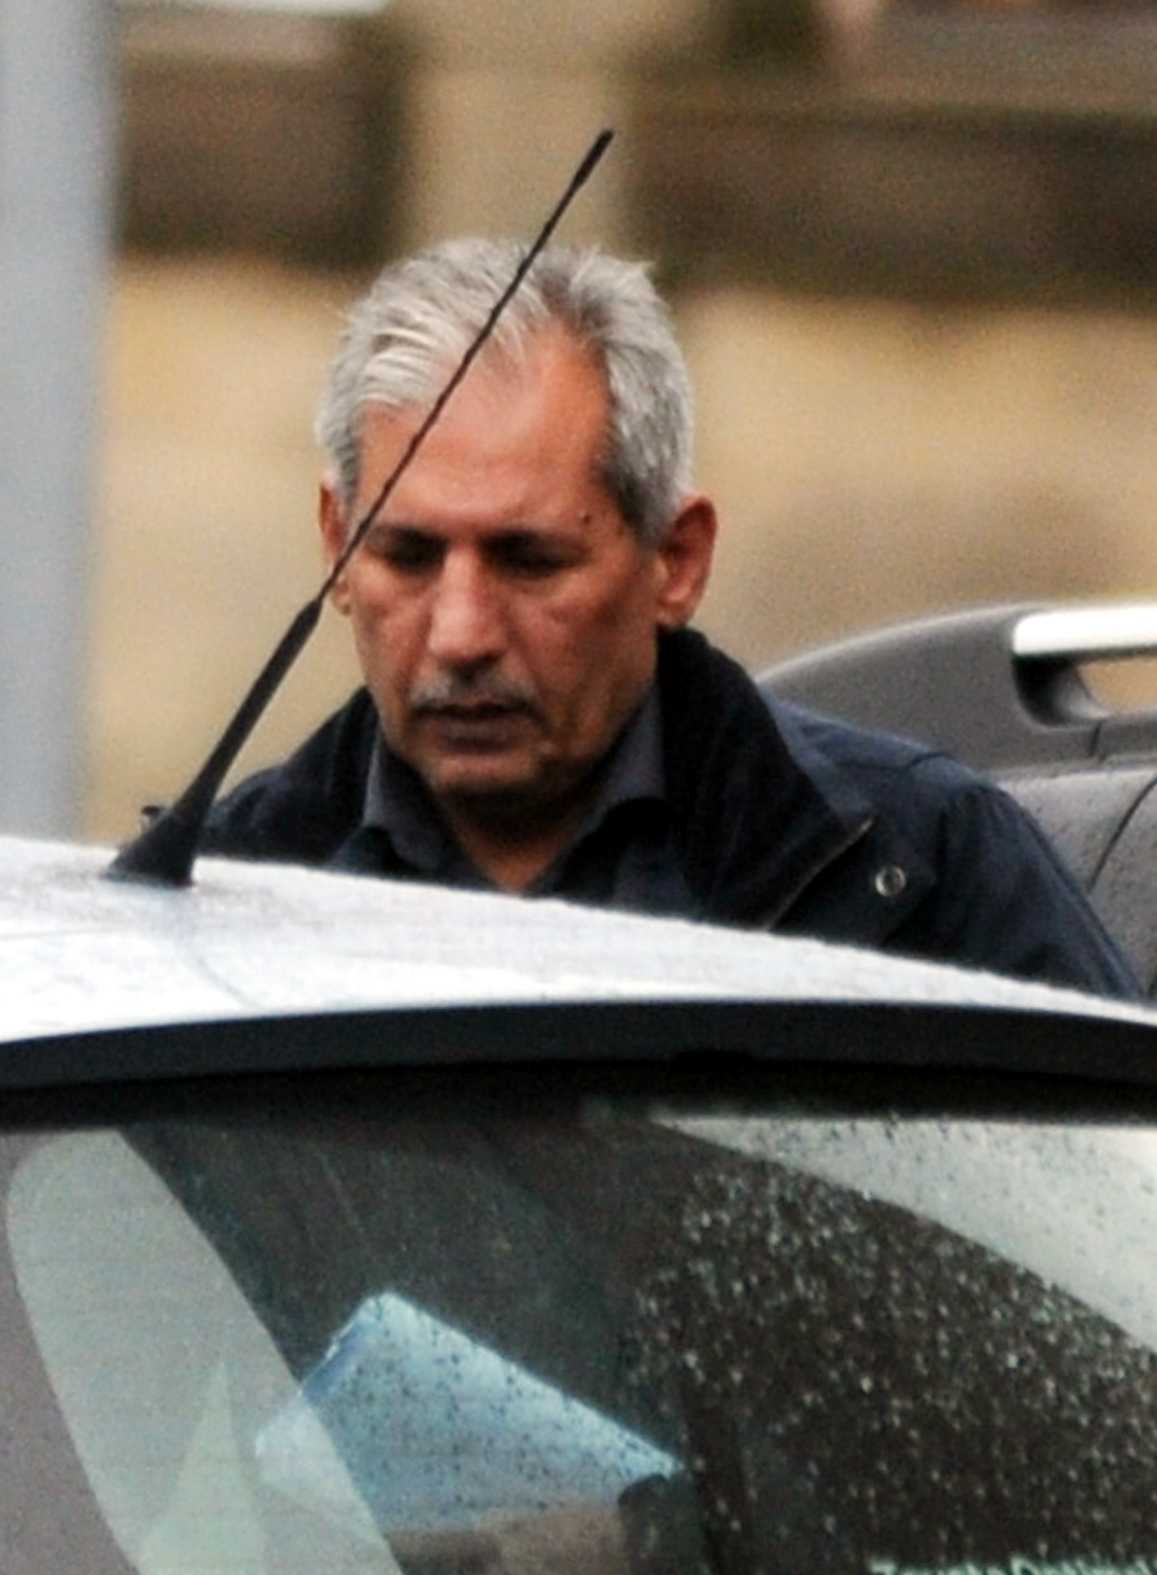 CONVICTED: Taxi driver Pervez Sajid leaves court